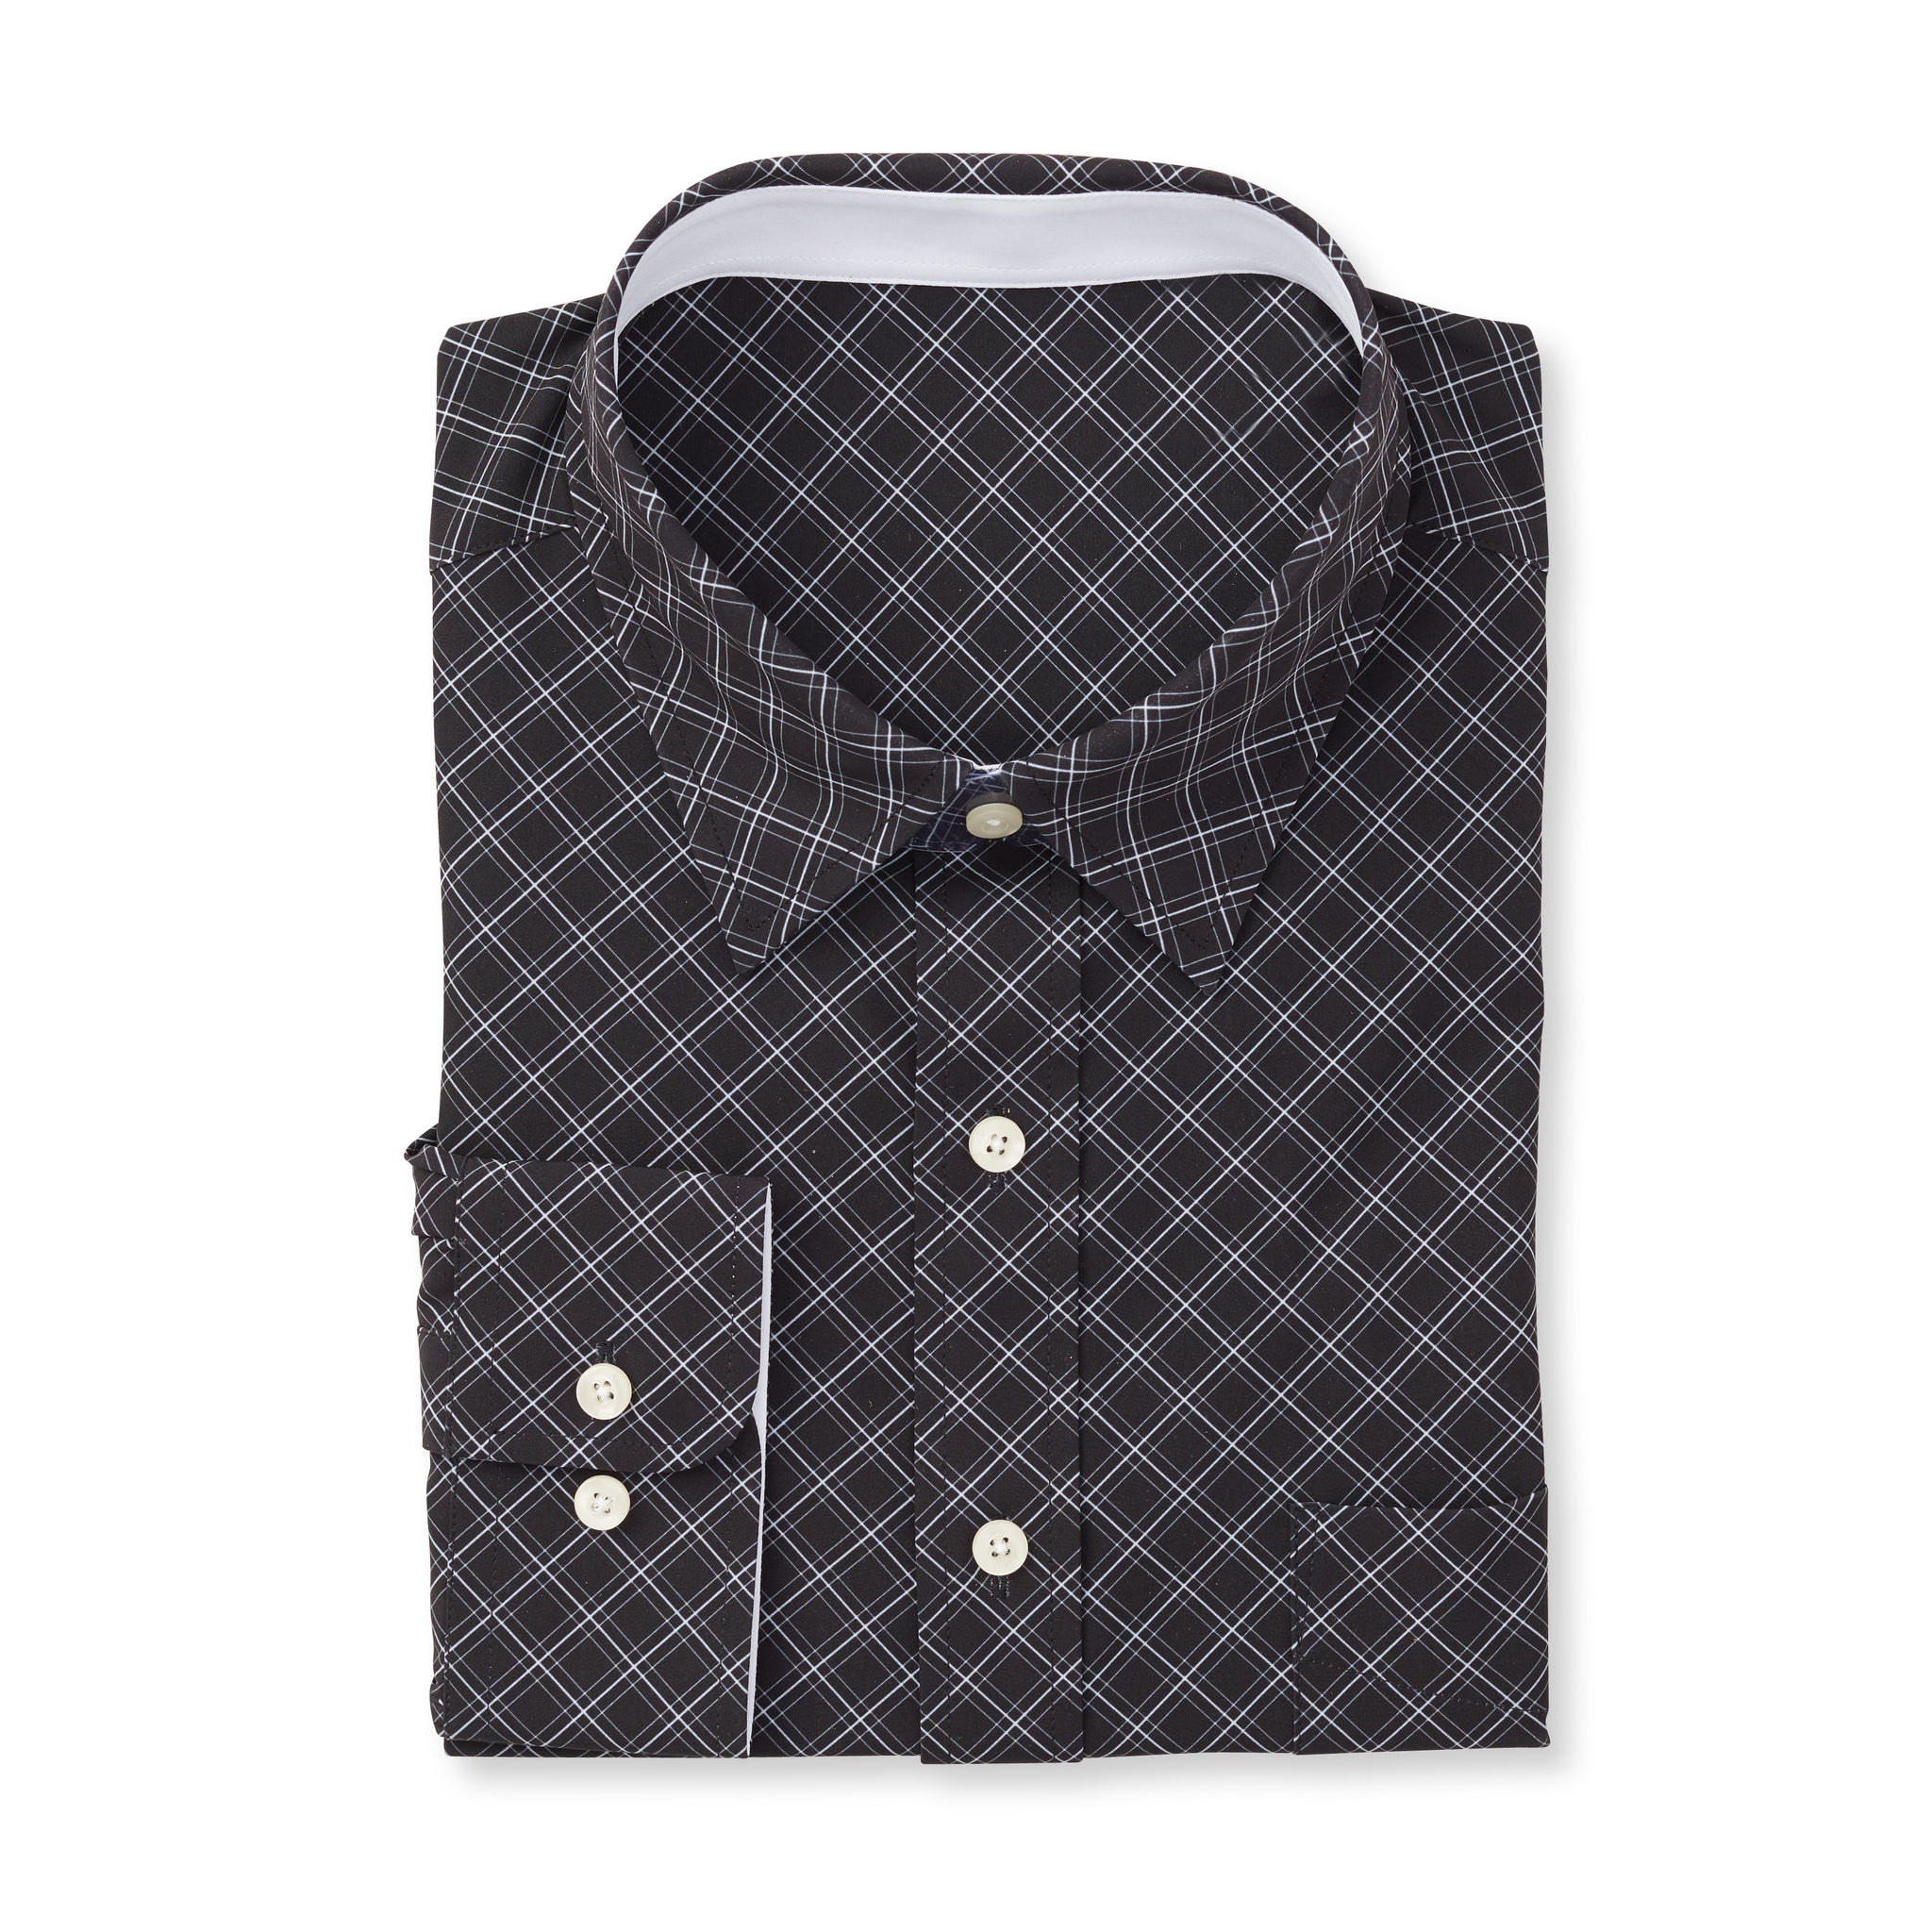 THE  BOSS JASON DIAGONAL SPORT SHIRT - IS92310 Black